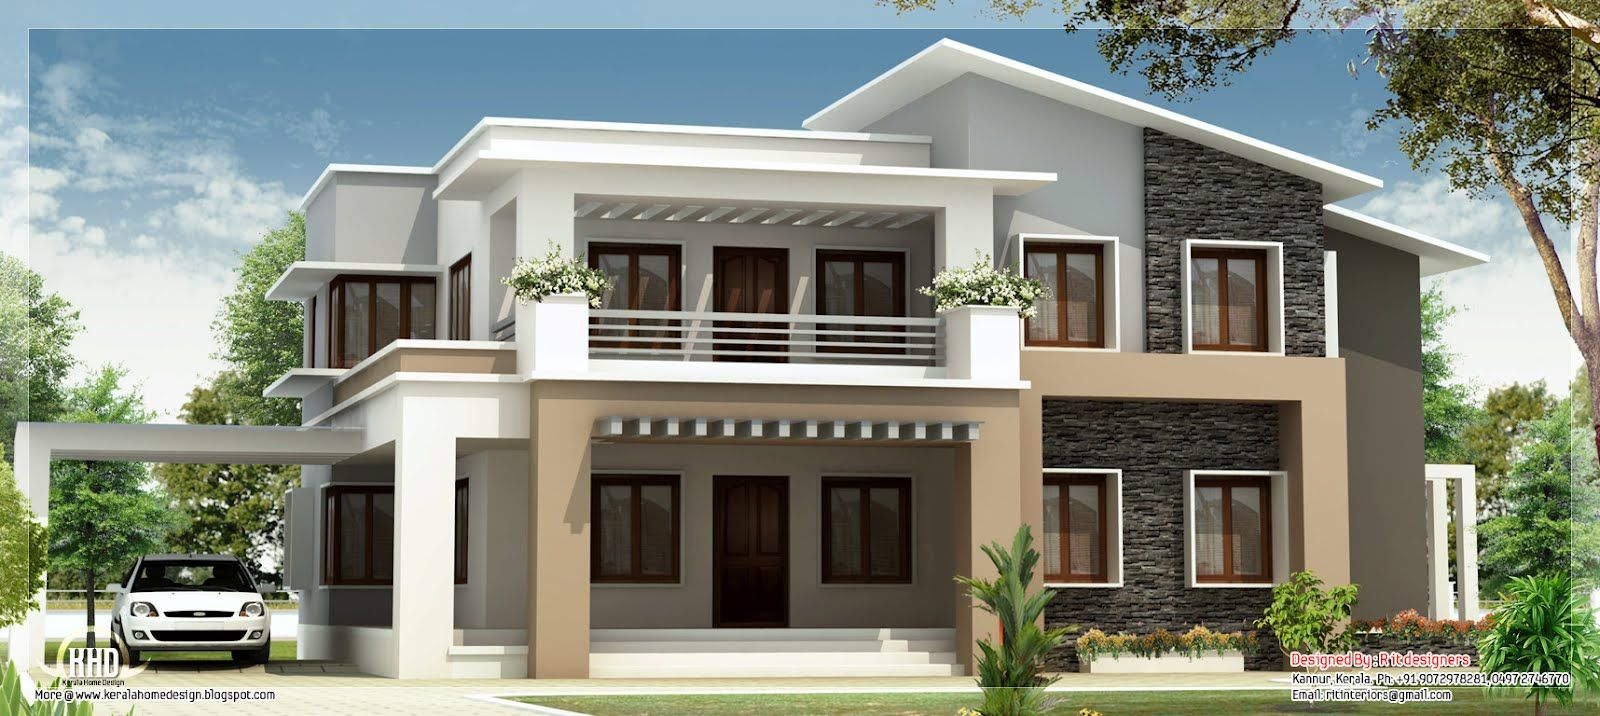 Modern House Design About The Home Design Here Is The Latest Modern North Indian Style